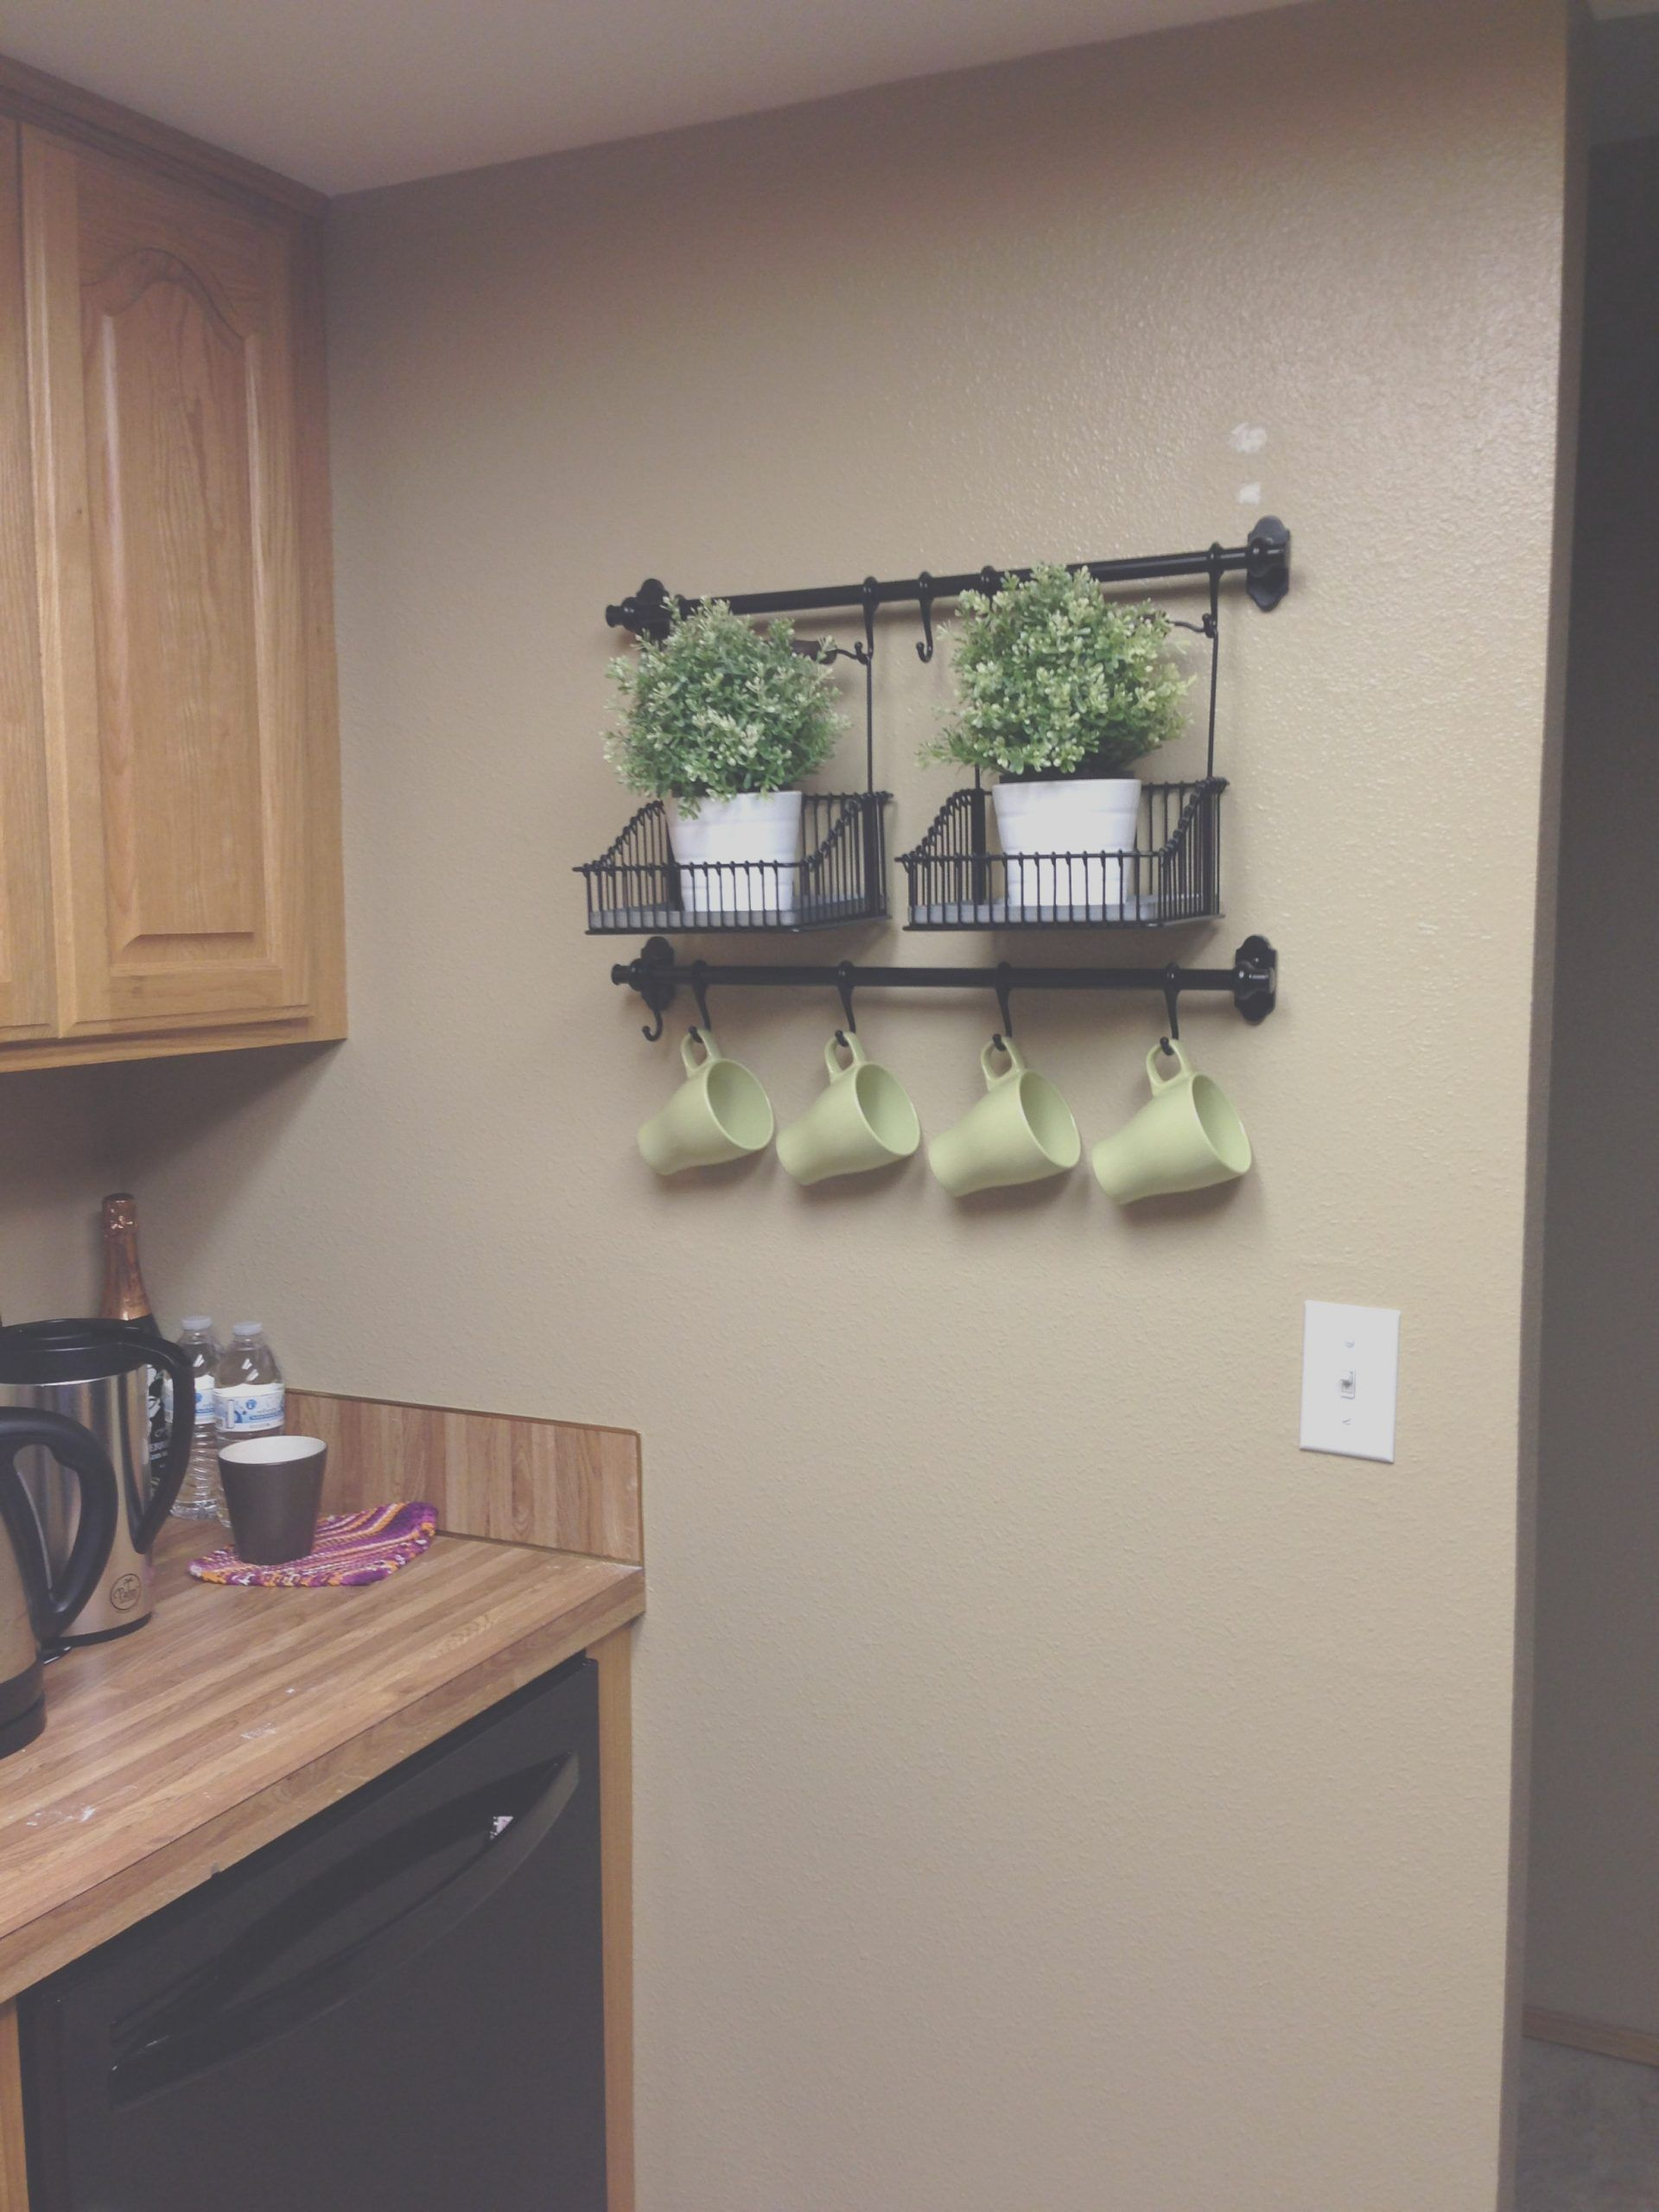 10 Awesome Kitchen Ideas Wall Decor Collection Kitchen Wall Decor Home Decor Kitchen Wall